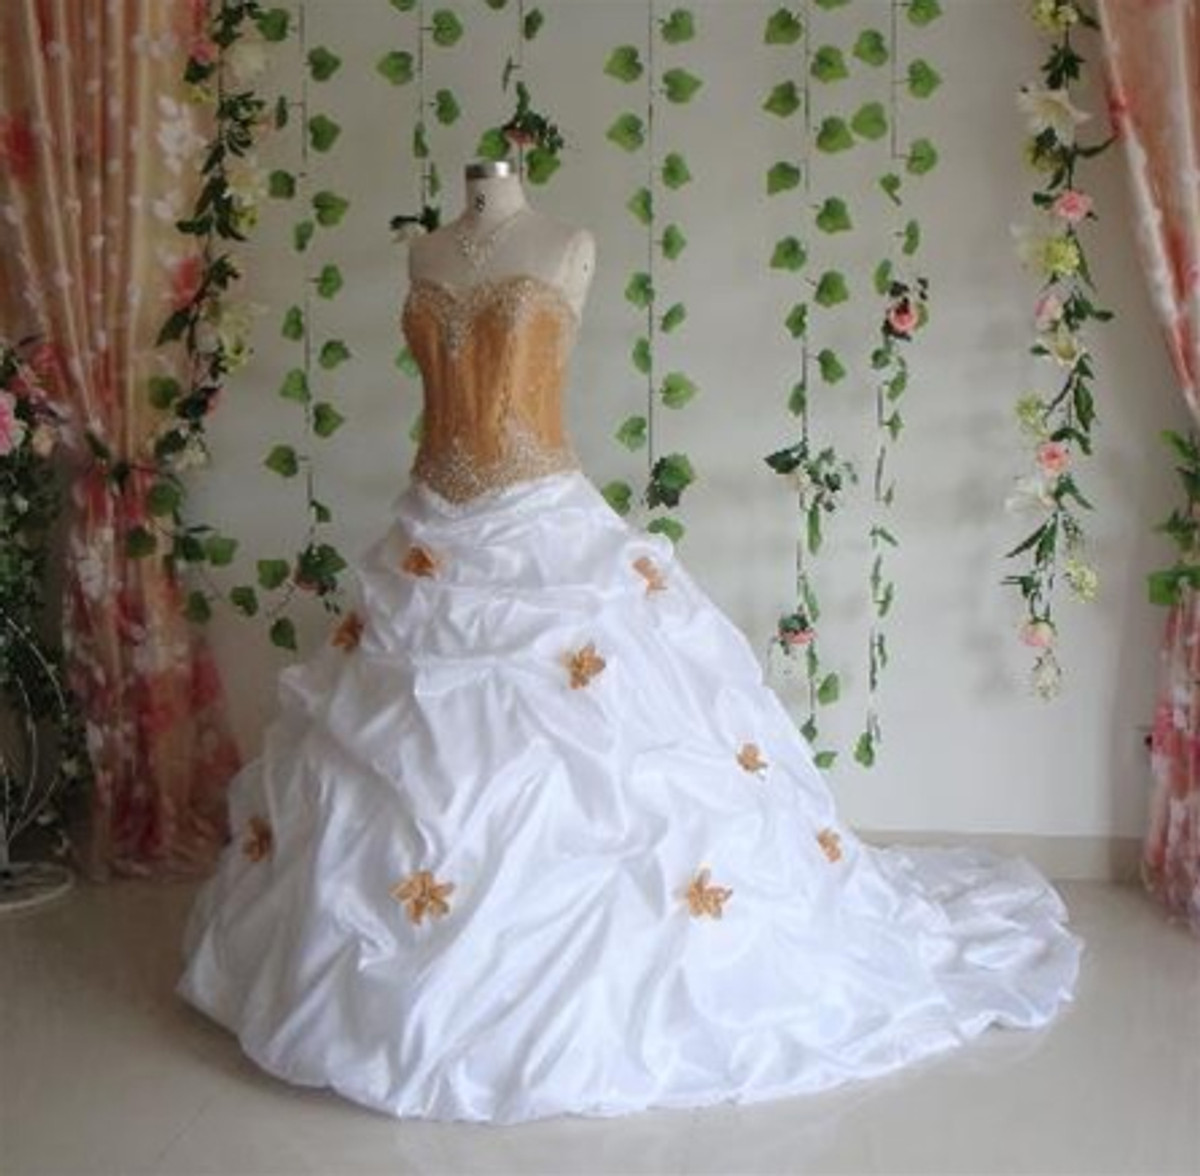 Gold Taffeta Wedding Dress - Available in Every Color 9